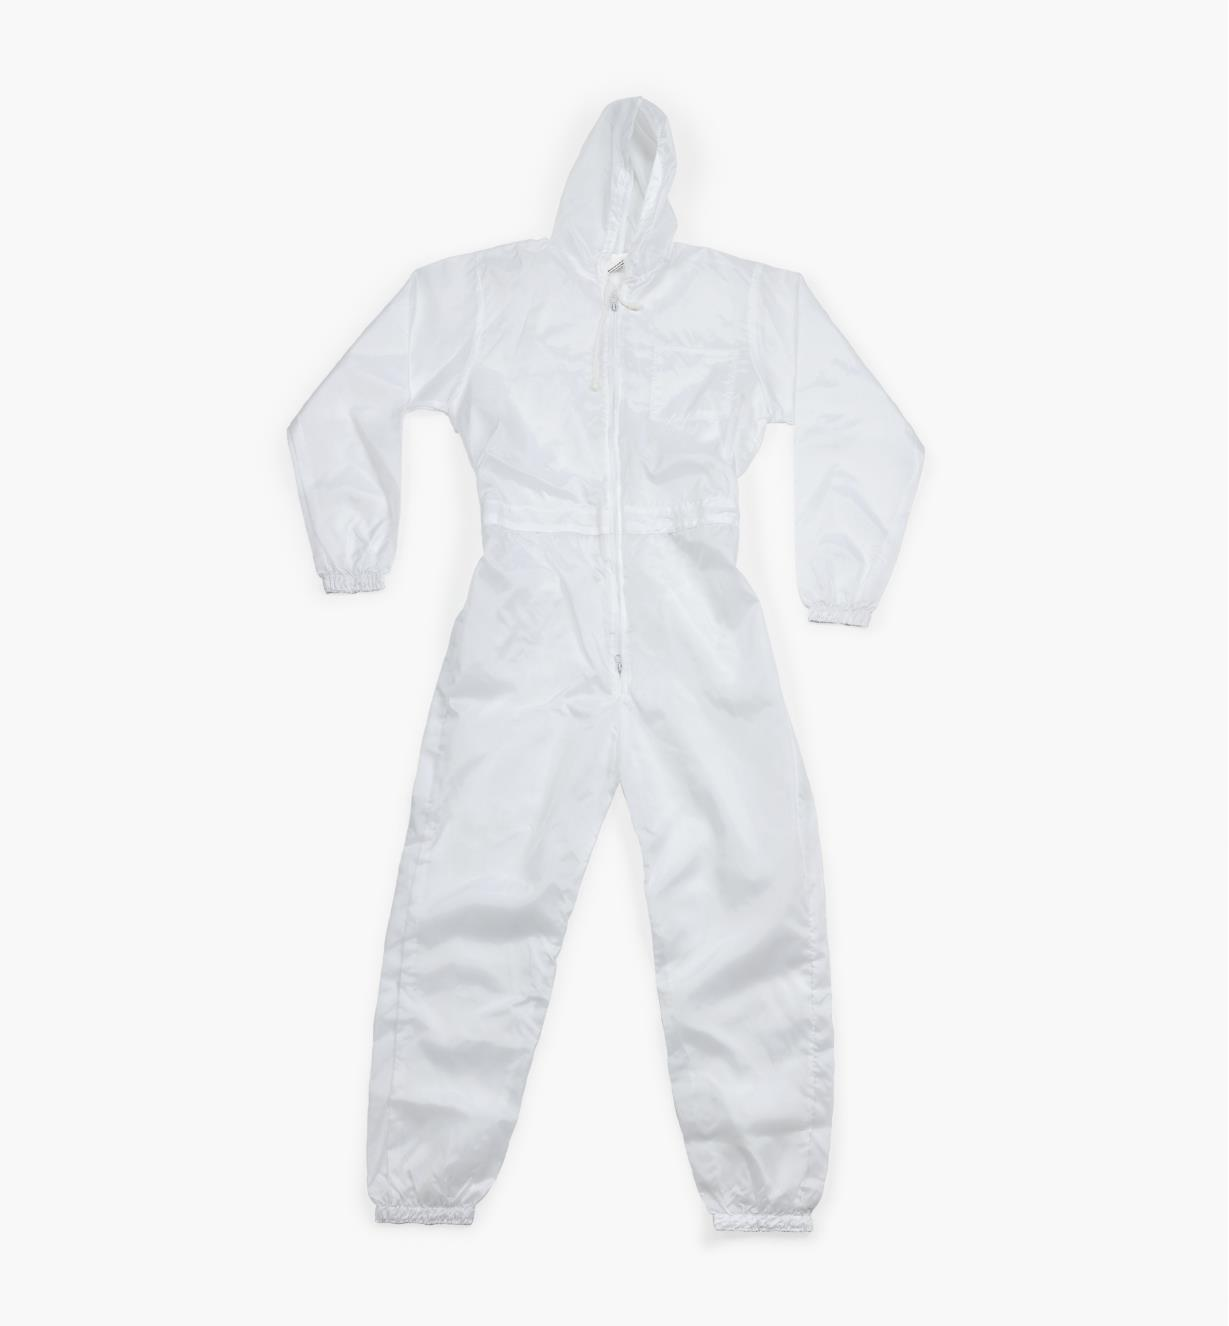 56Z9992 - Large Coveralls (42-44)